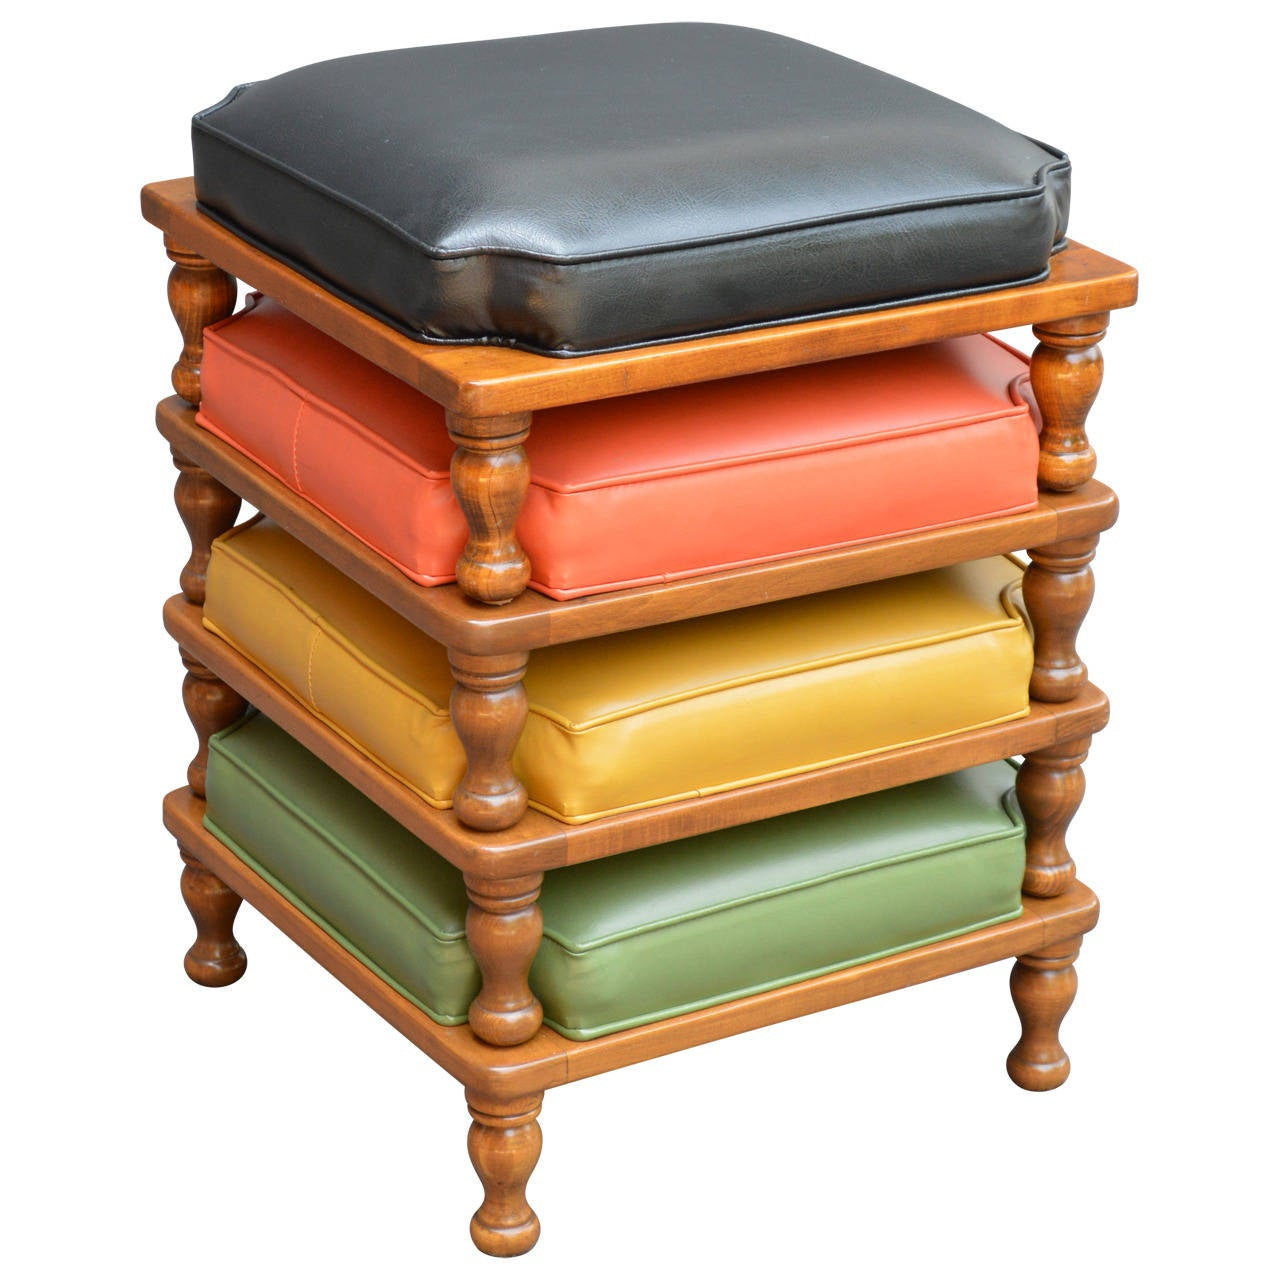 Cool set of four Ethan Allen stacking ottomans from the 1970s! The original Naugahyde cushions are very versatile in black, orange, yellow and green and sit atop a medium wood finish. Labeled Ethan Allen American traditional.